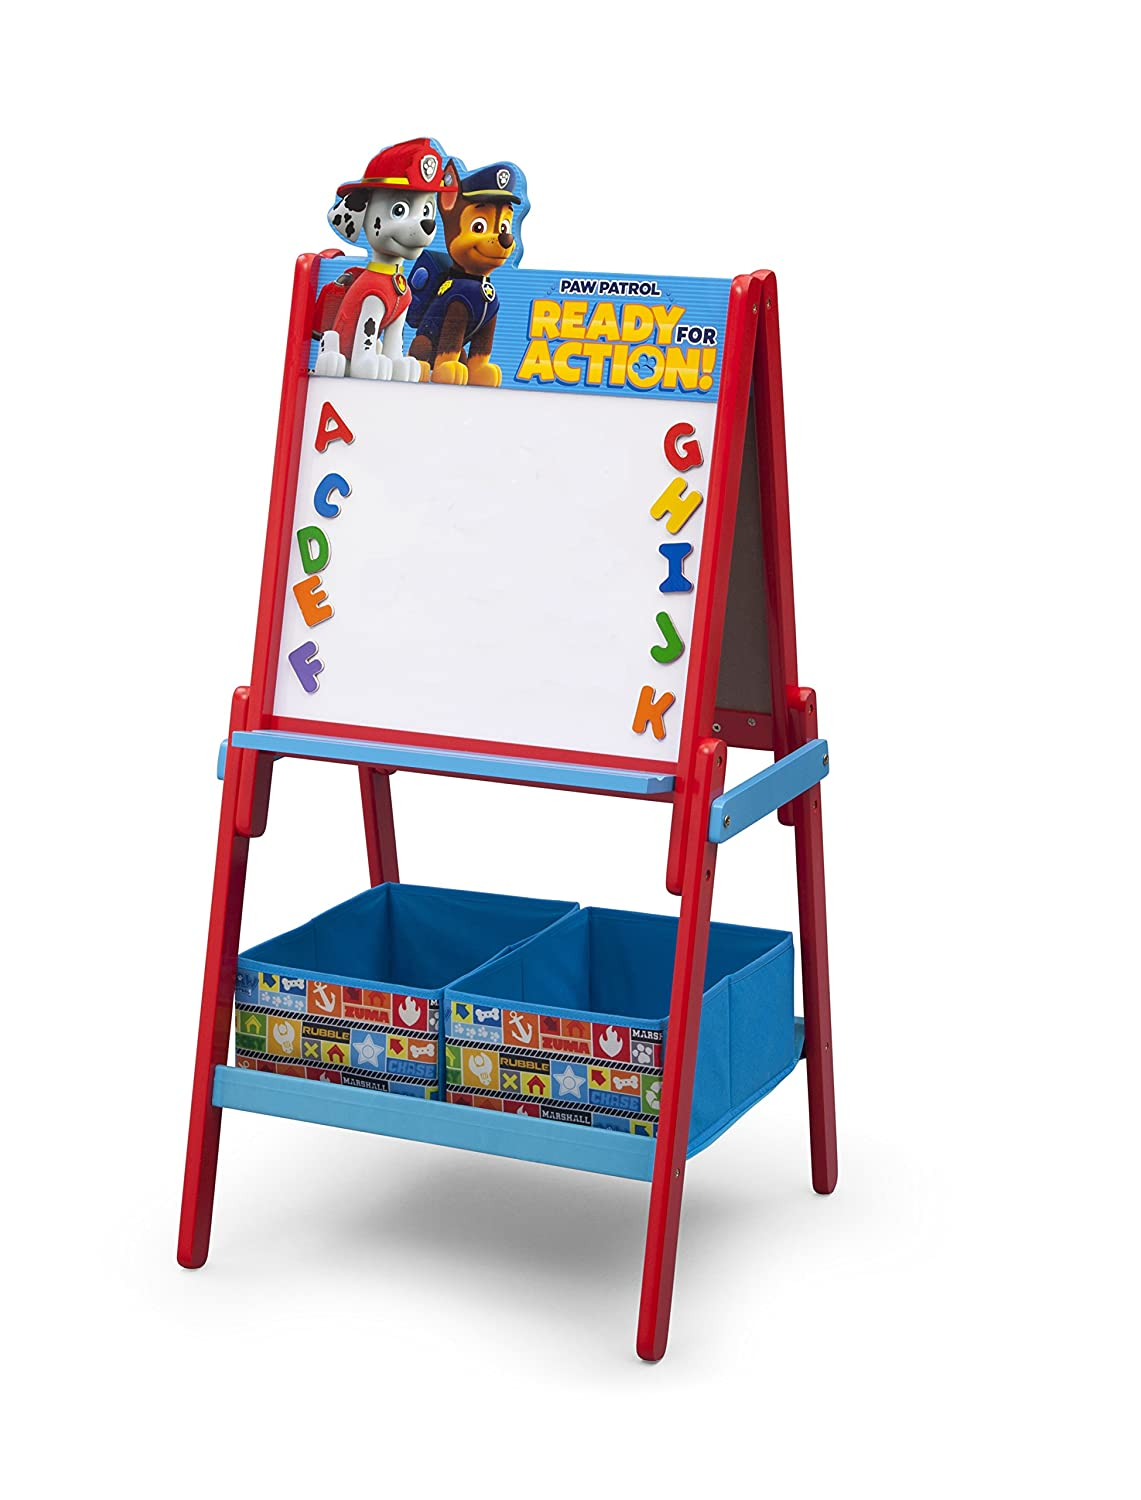 Delta Children Wooden Double Sided Activity Easel with Storage, Nick Jr. PAW Patrol